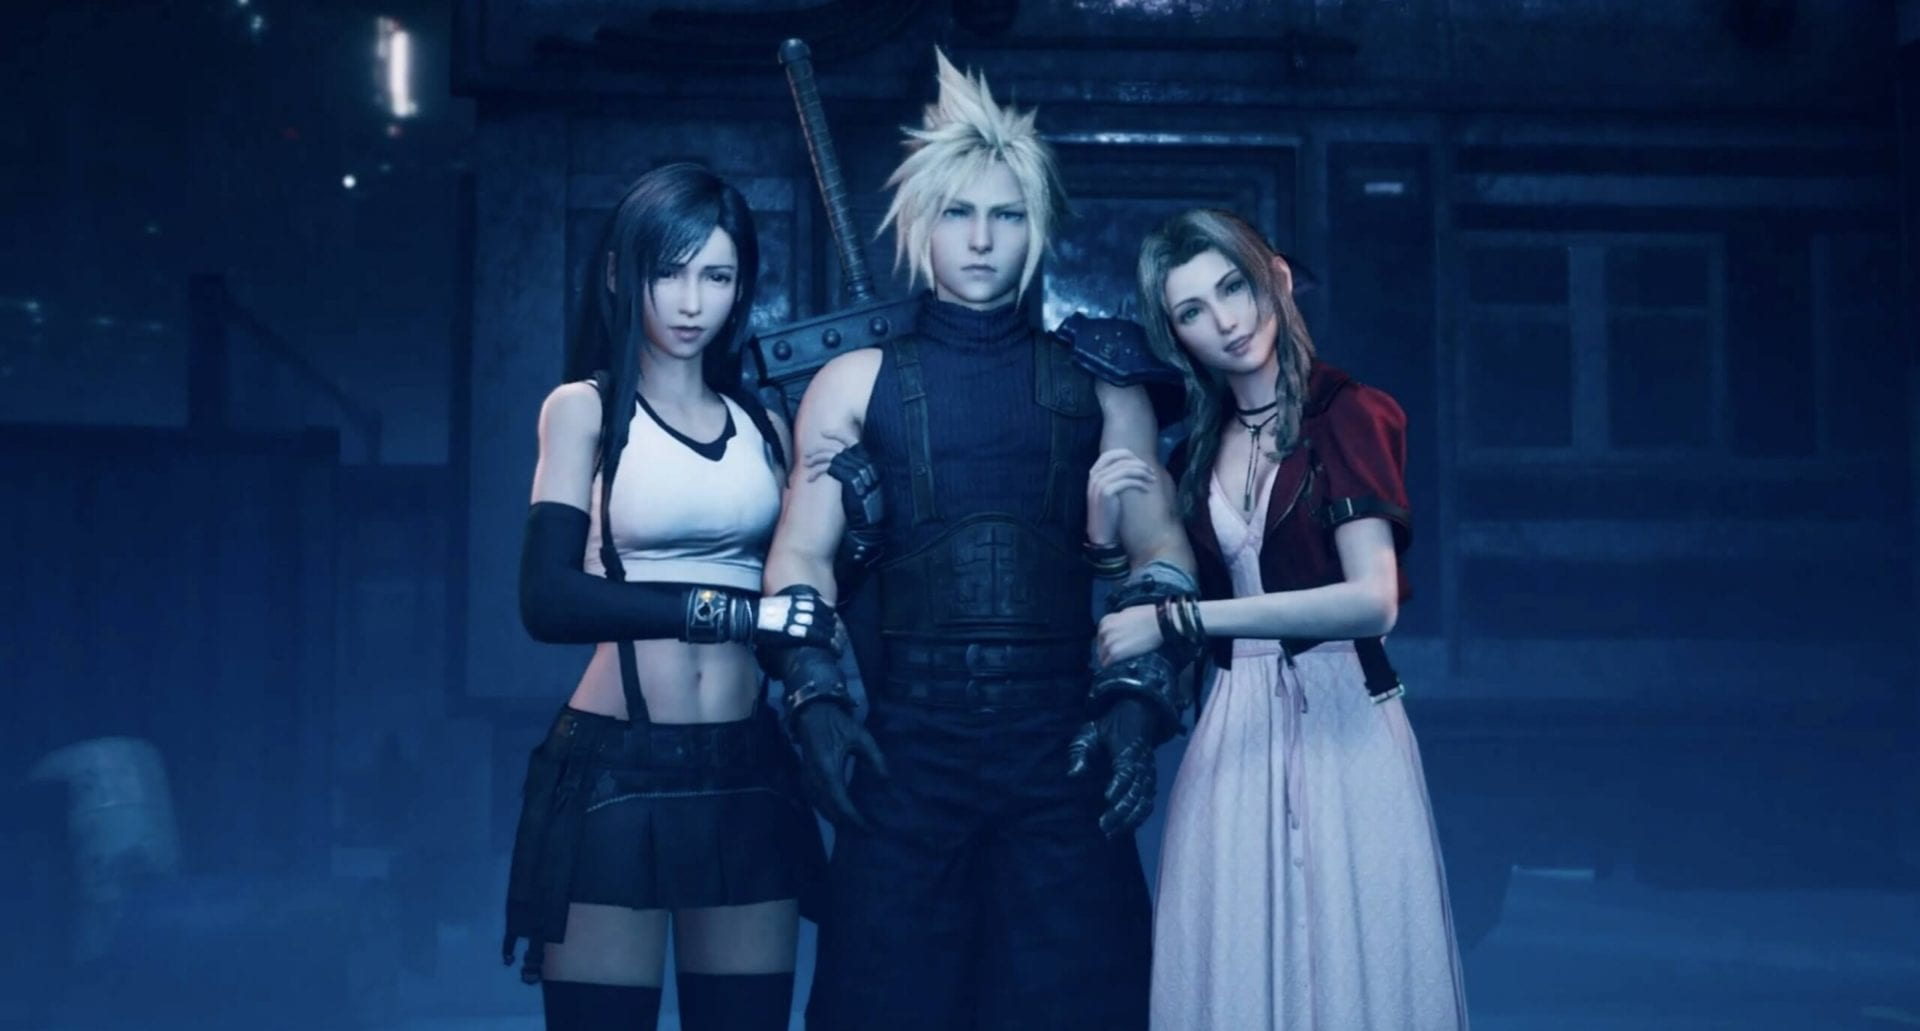 final fantasy 7 remake, don corneo answers